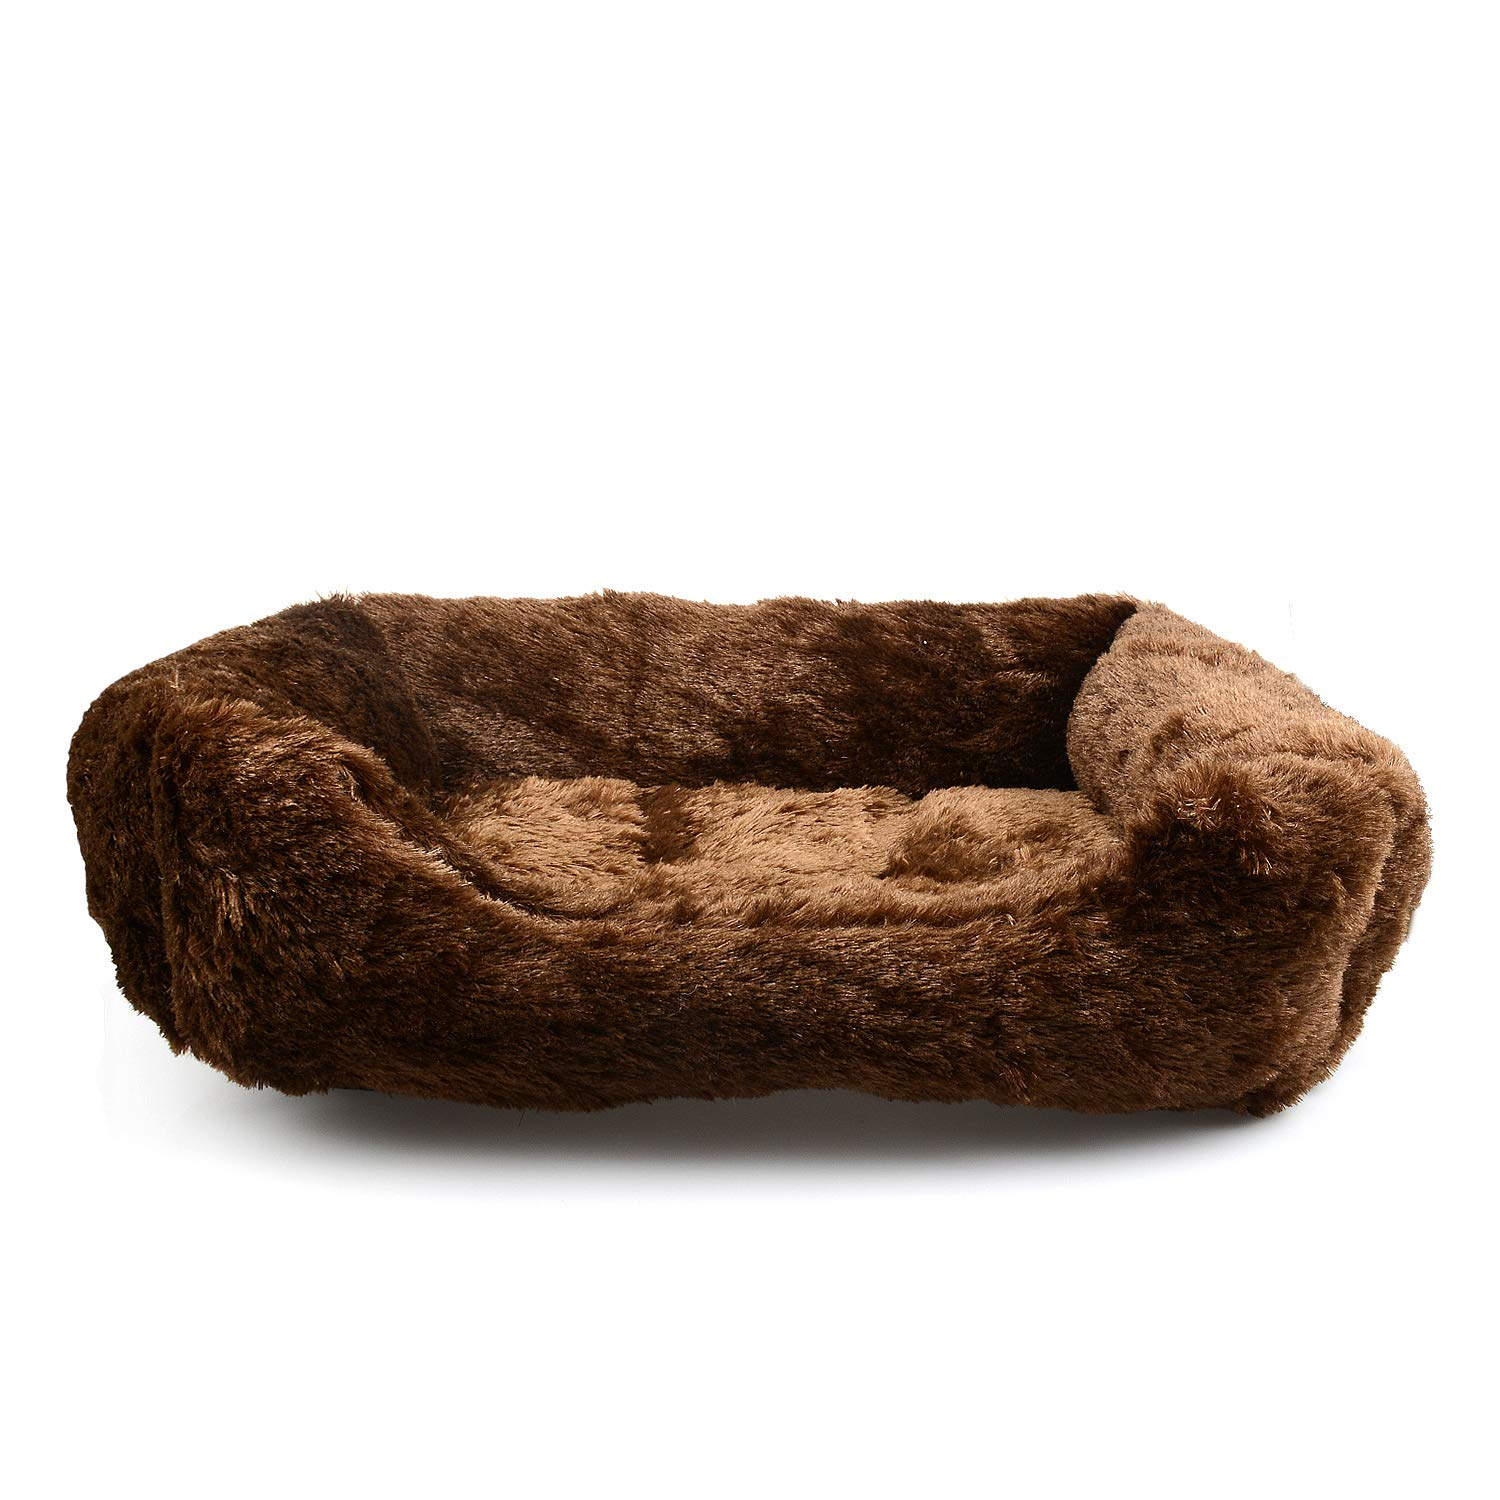 S KEYI Luxury Cozy Furry pet Bed for Dogs and Cats (S)